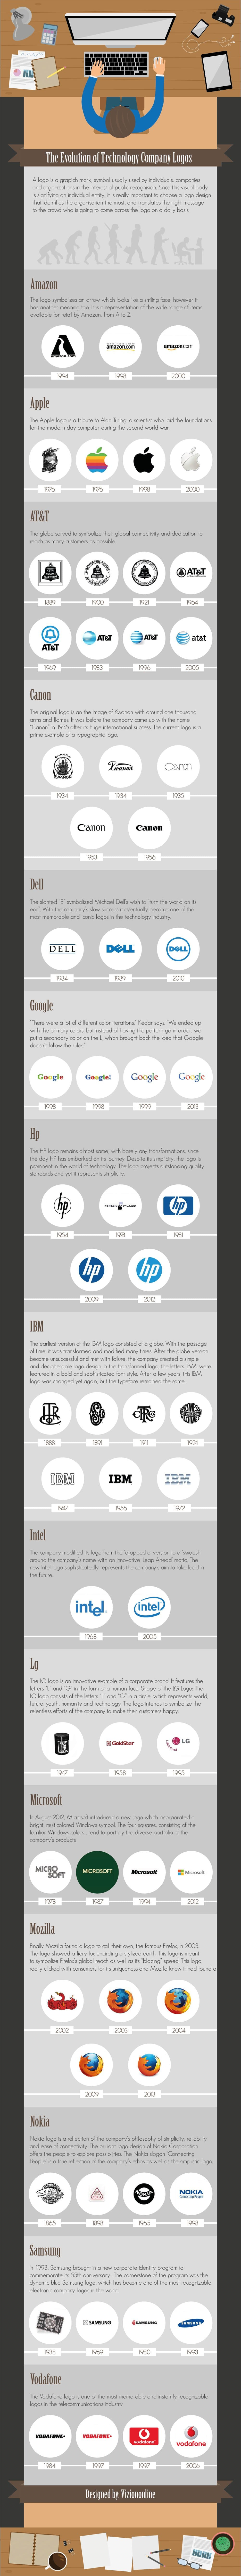 Tech Company Logos Through The Years - Infographic